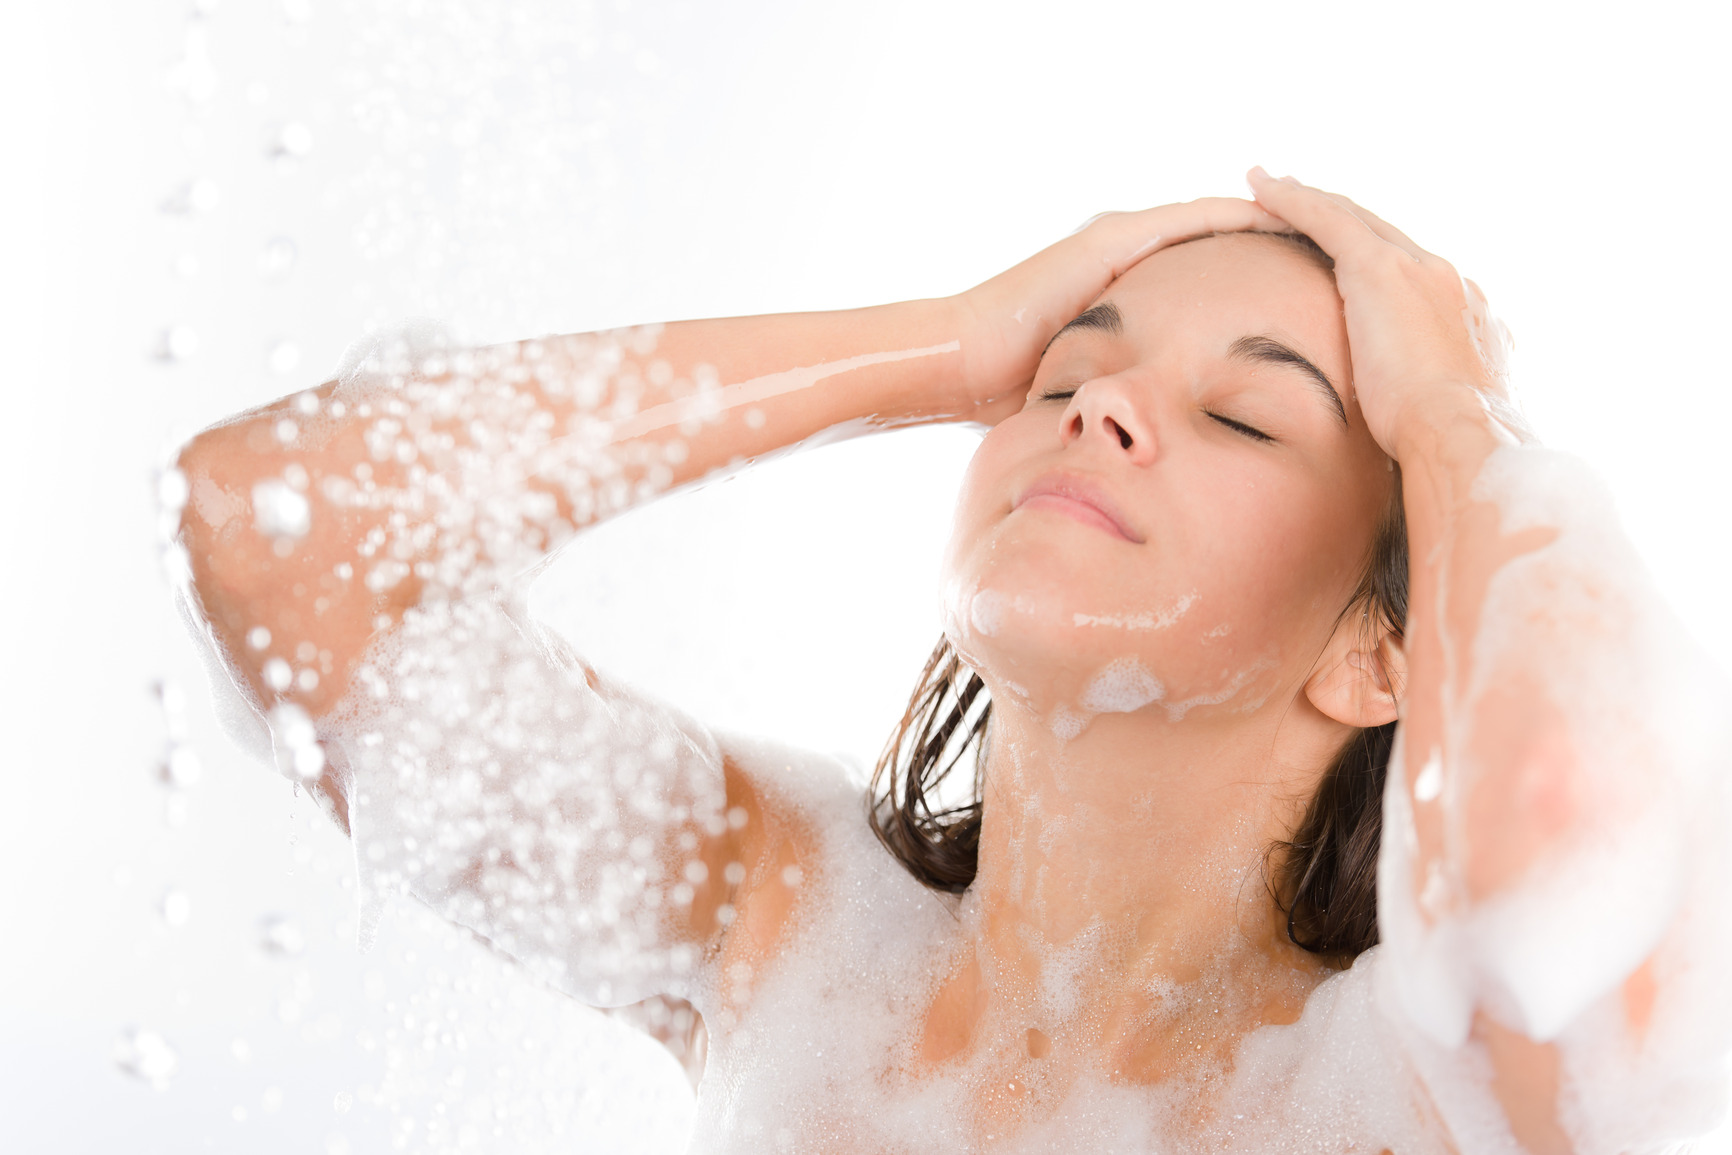 Warm weather exercise and hot baths might be okay for Pregnant women